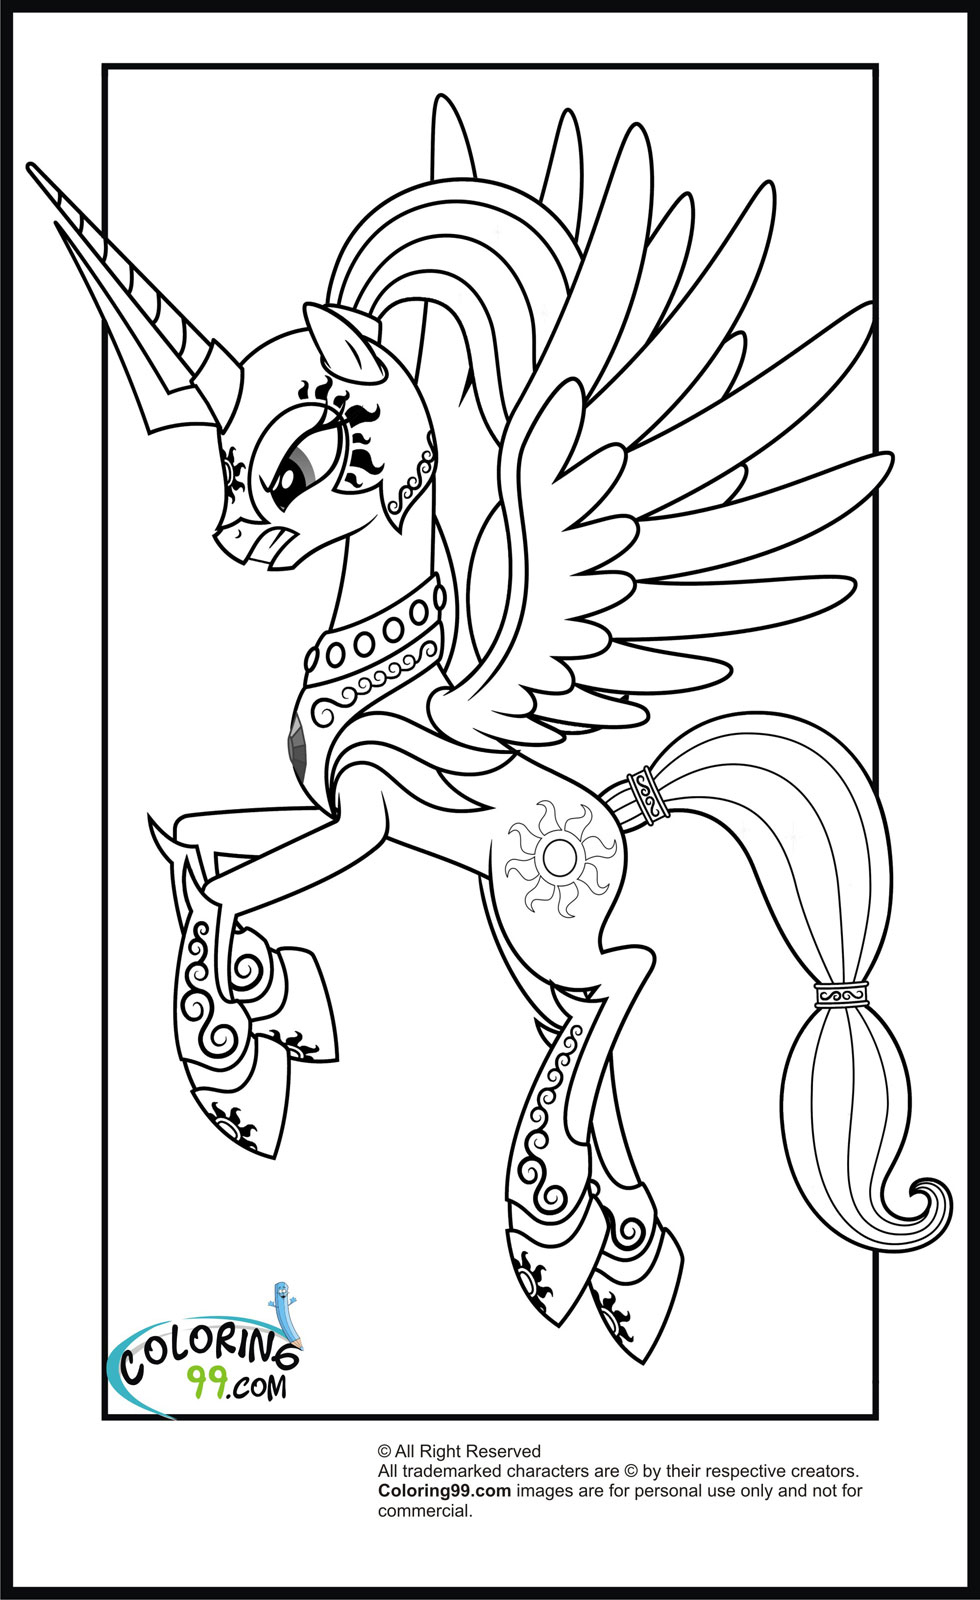 Luxe Coloriage A Imprimer My Little Pony Equestria Girl tout Coloriage Gratuit My Little Pony